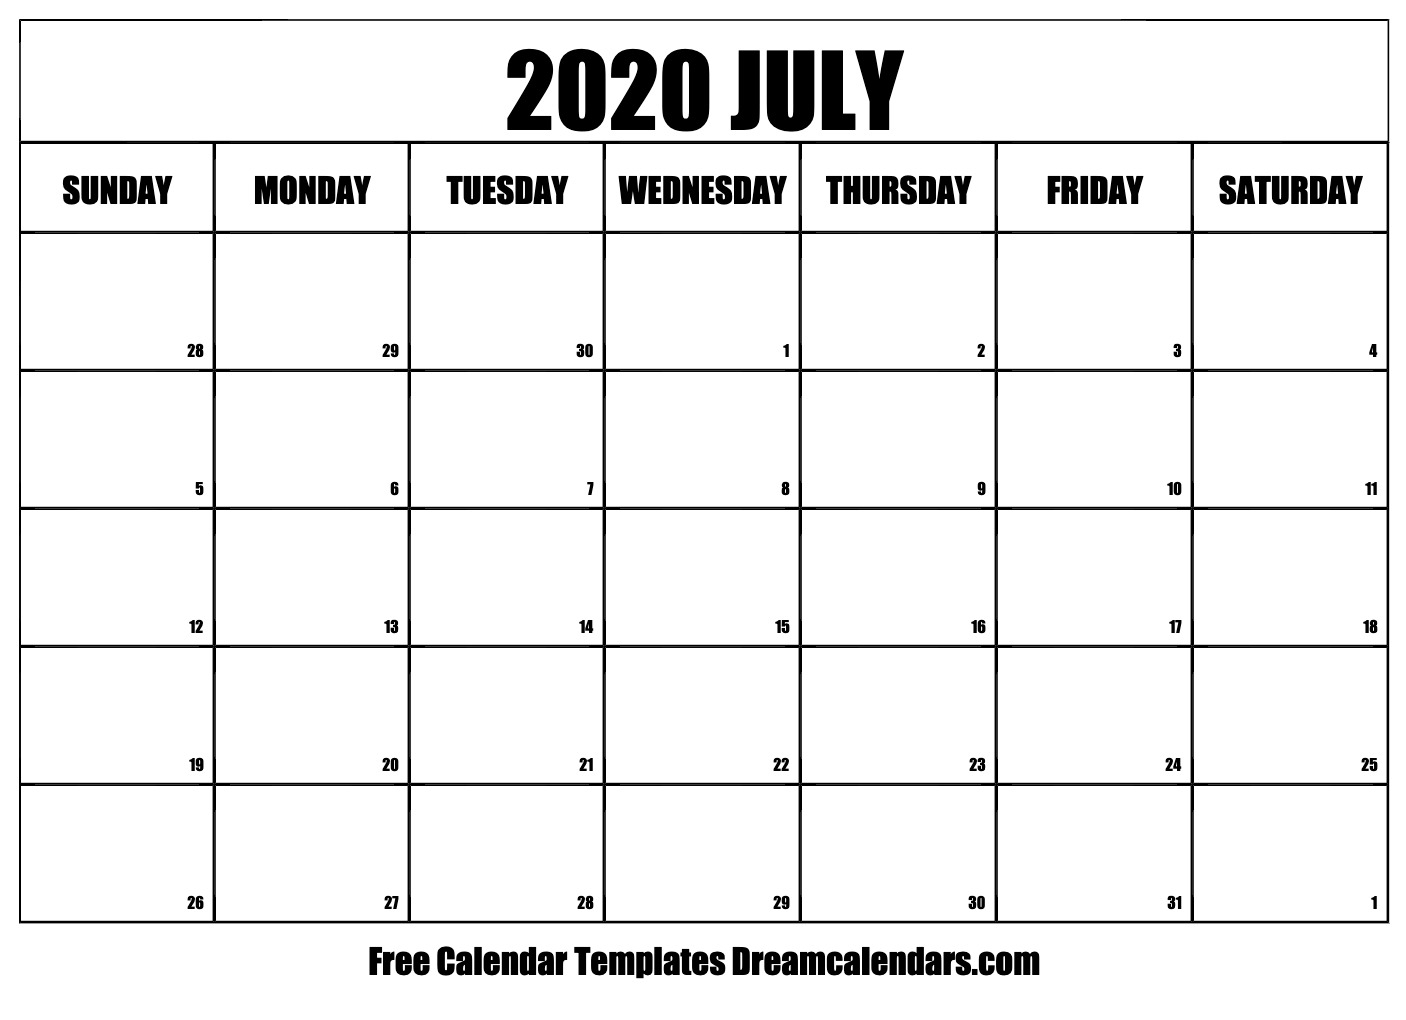 Printable July 2020 Calendar intended for 2020 Printable Calendar Free That Start With Monday